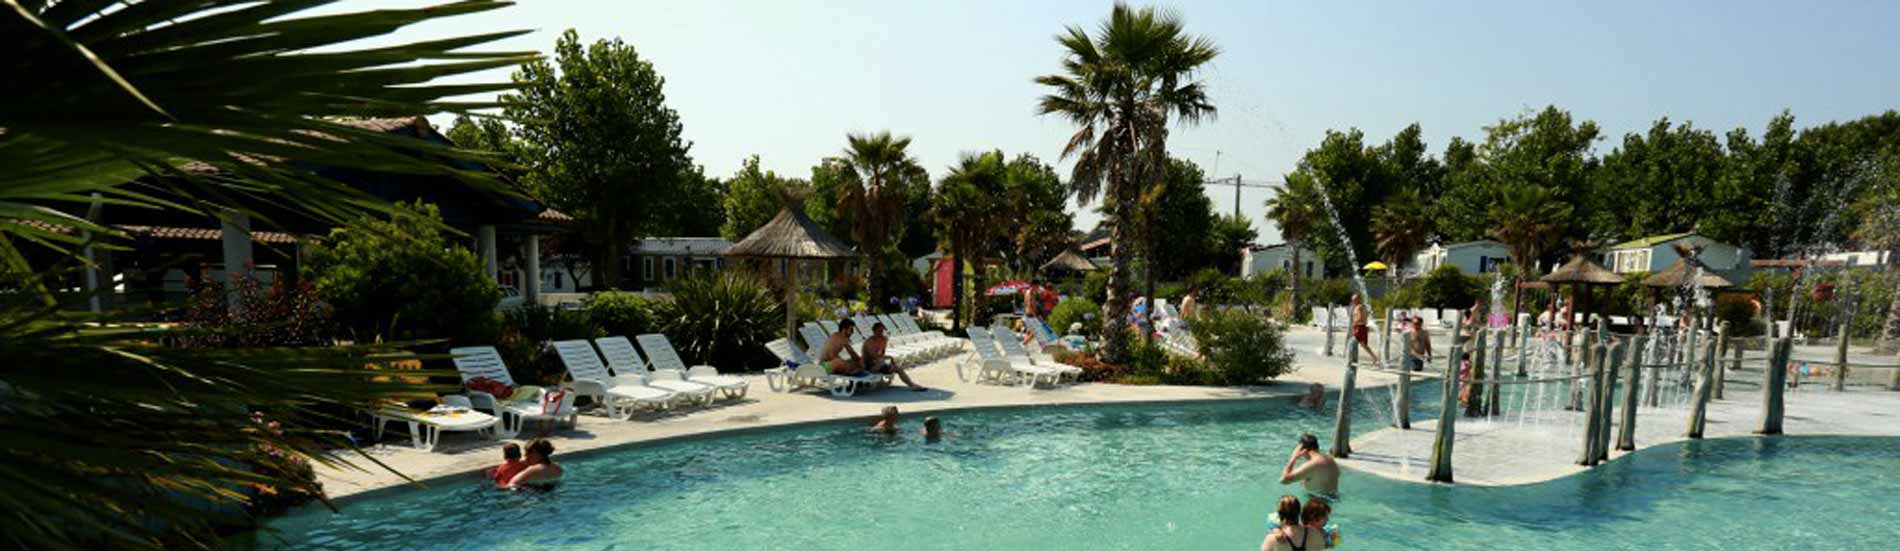 Camping biarritz bidart 4 toiles pays basque for Piscine pays basque